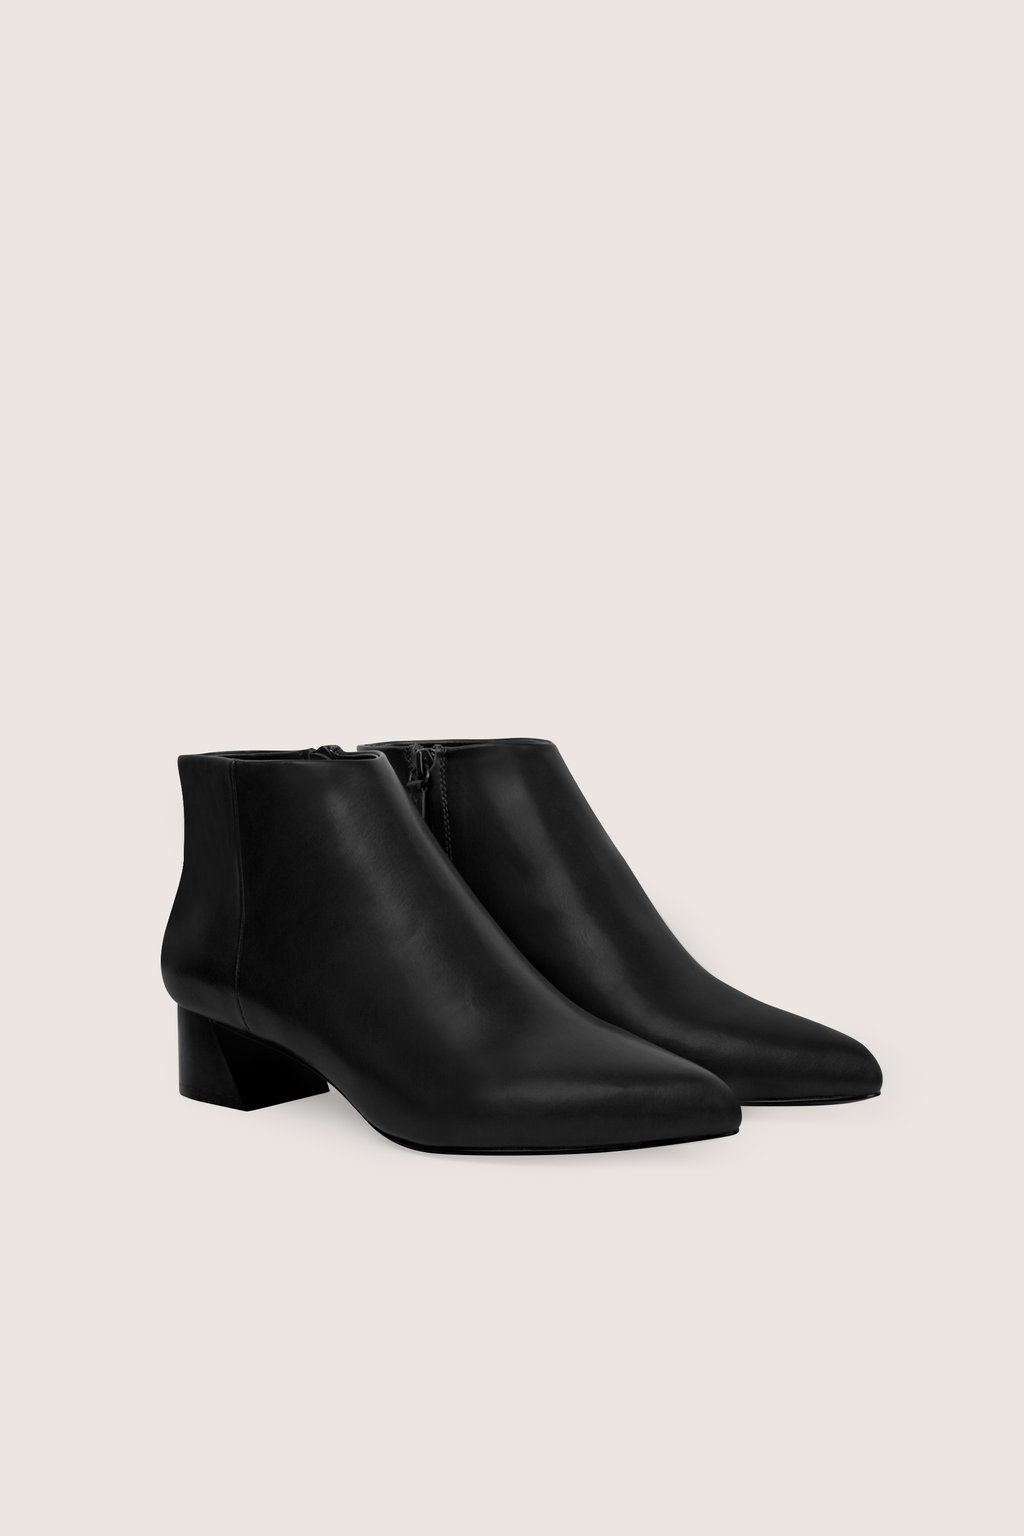 Ankle Boot 1731 Black 6